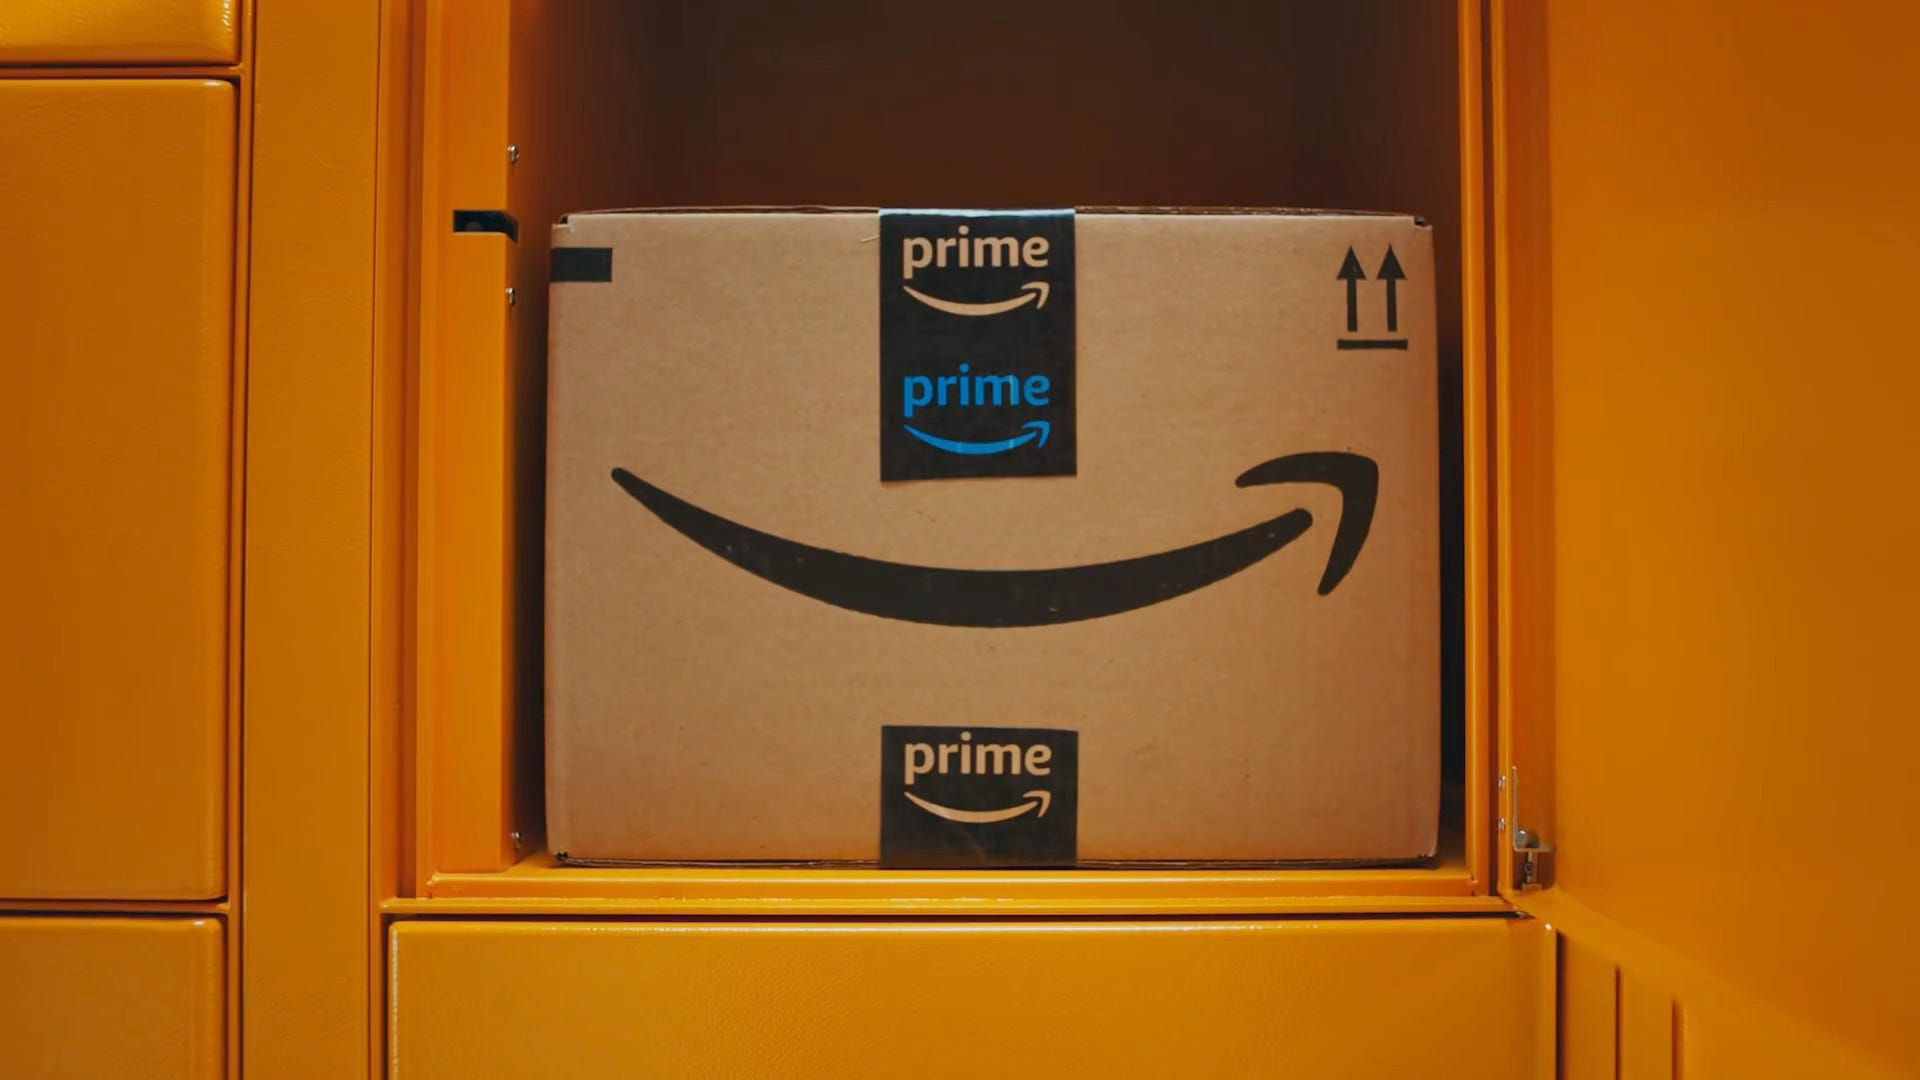 2ab47a73 Amazon's 1-day free-shipping option changes the game again